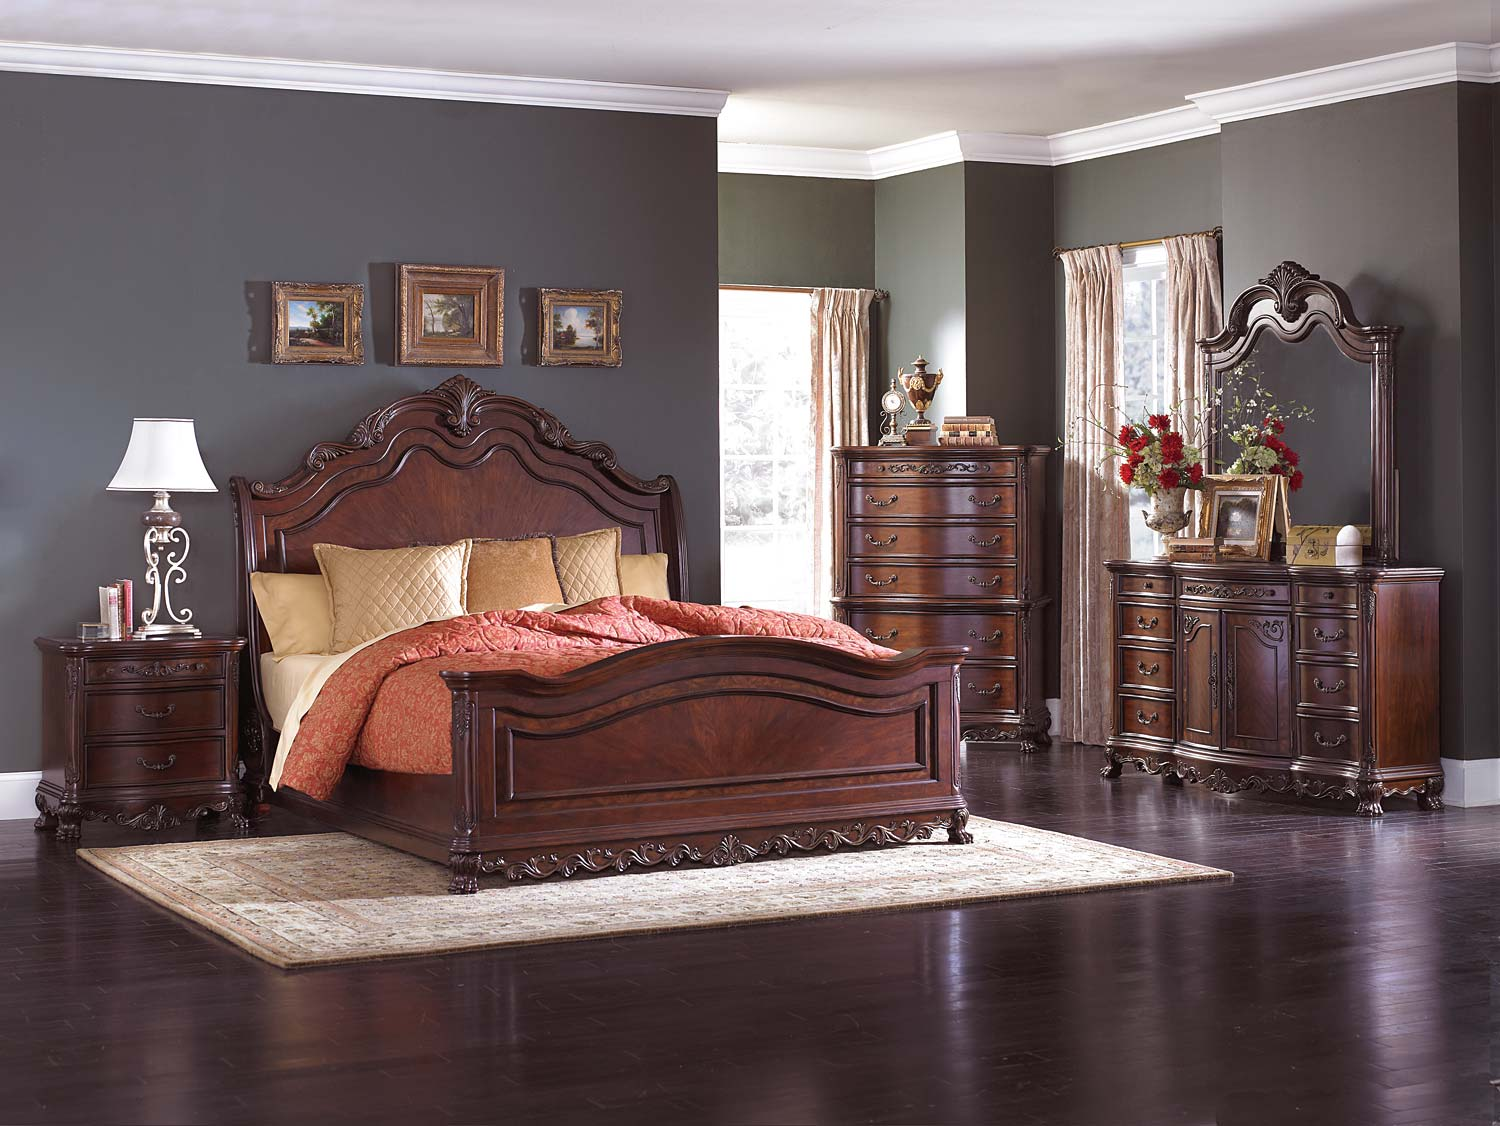 Homelegance Deryn Park Sleigh Bed Set - Cherry